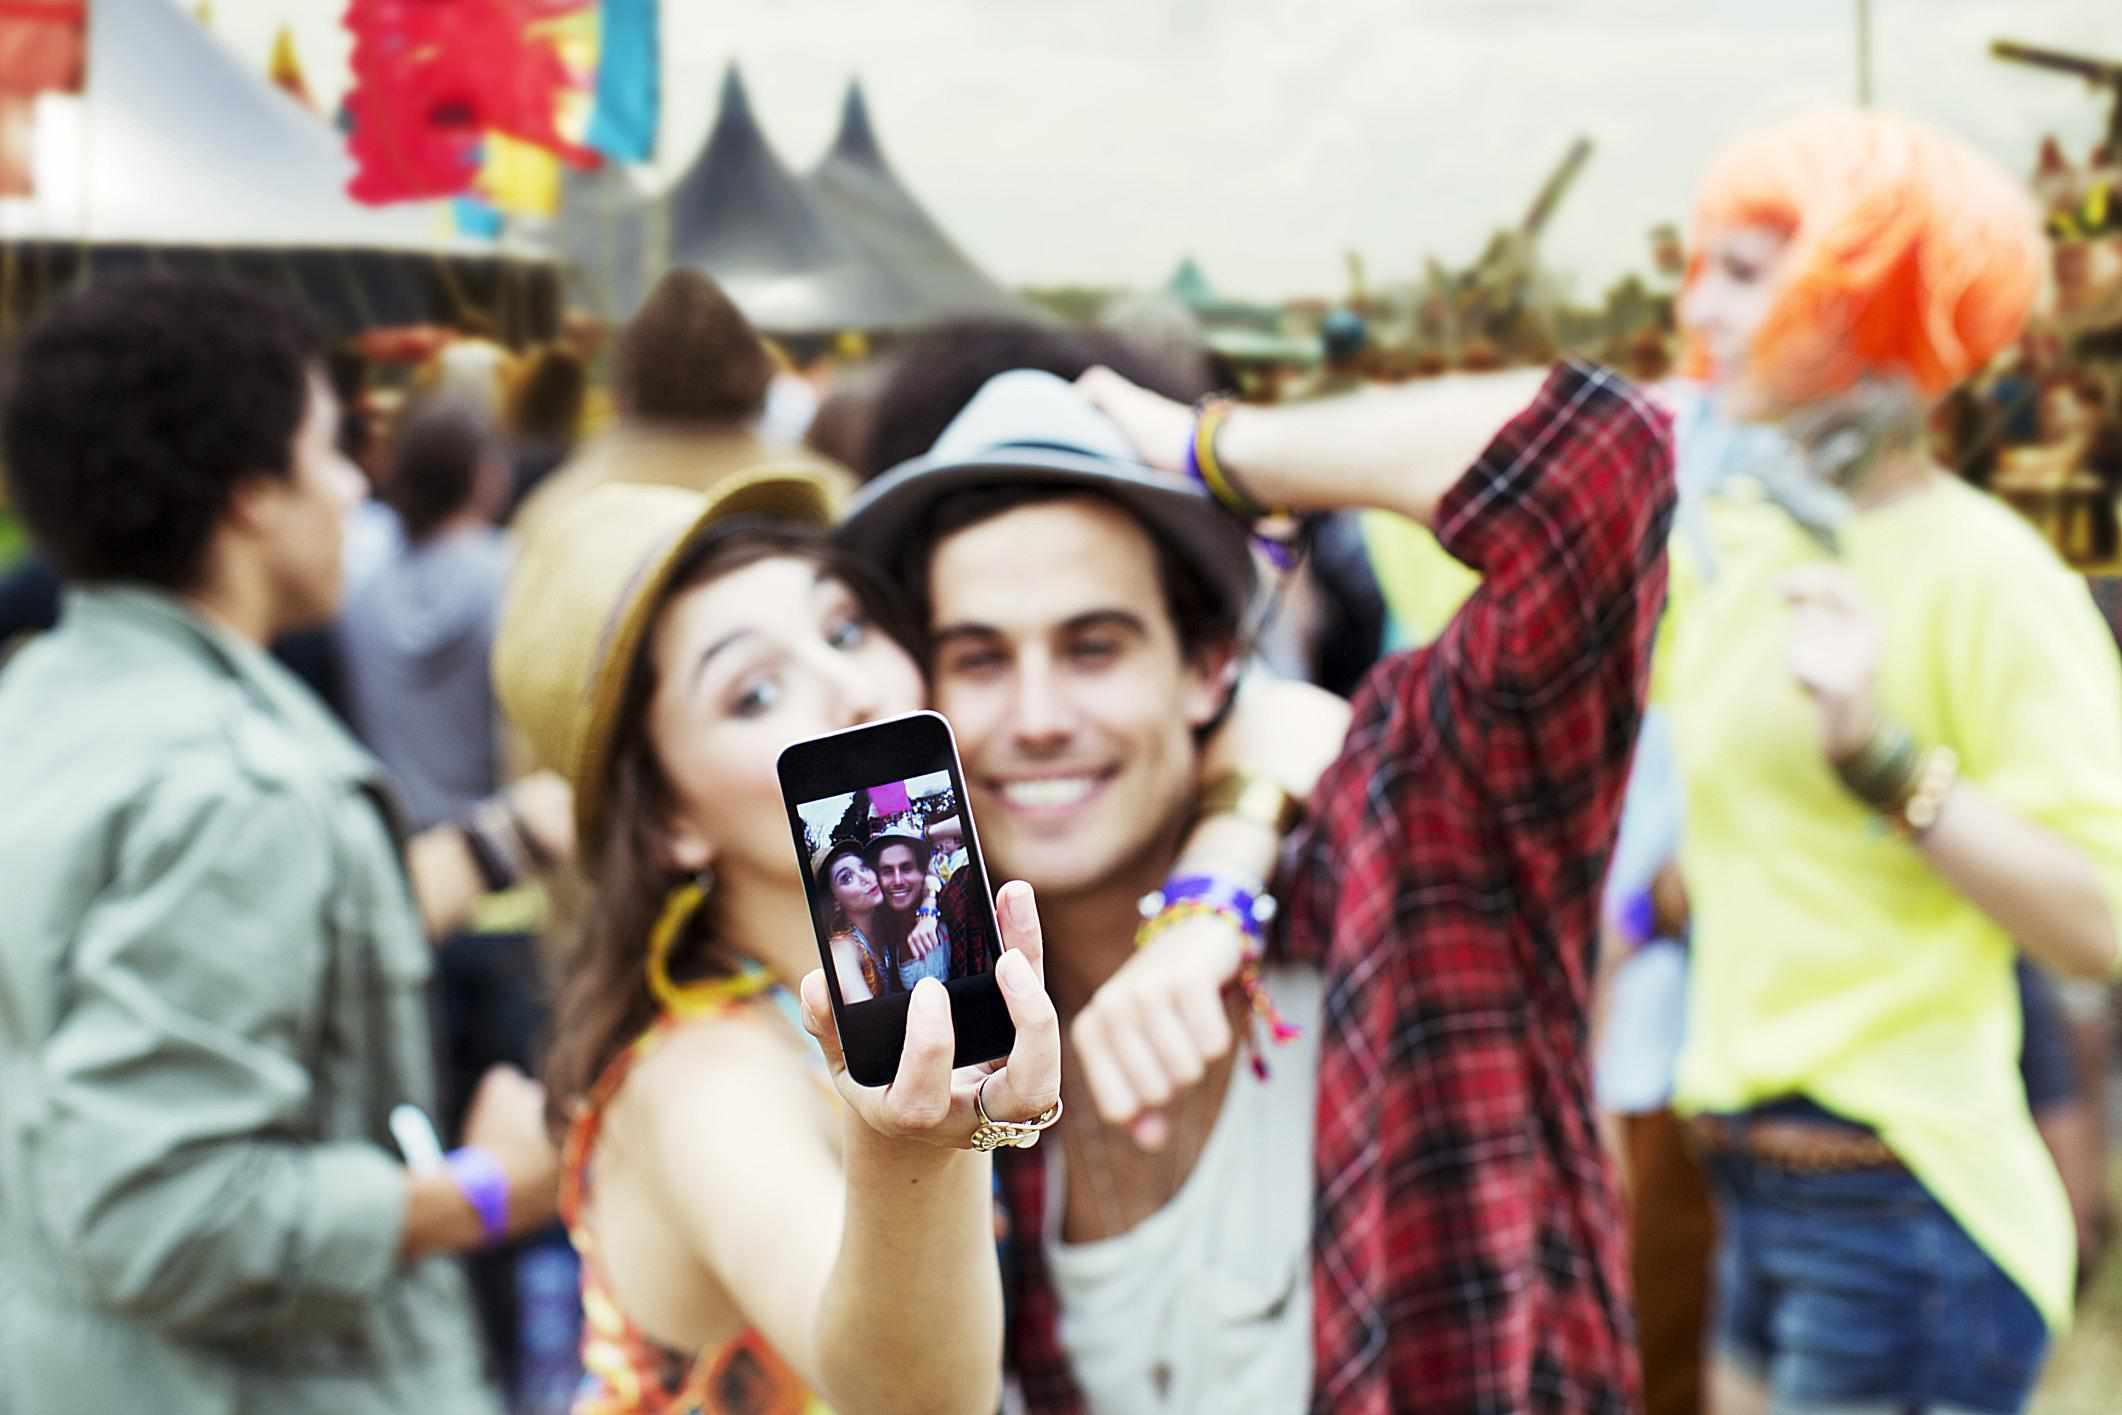 People taking a selfie at a music festival